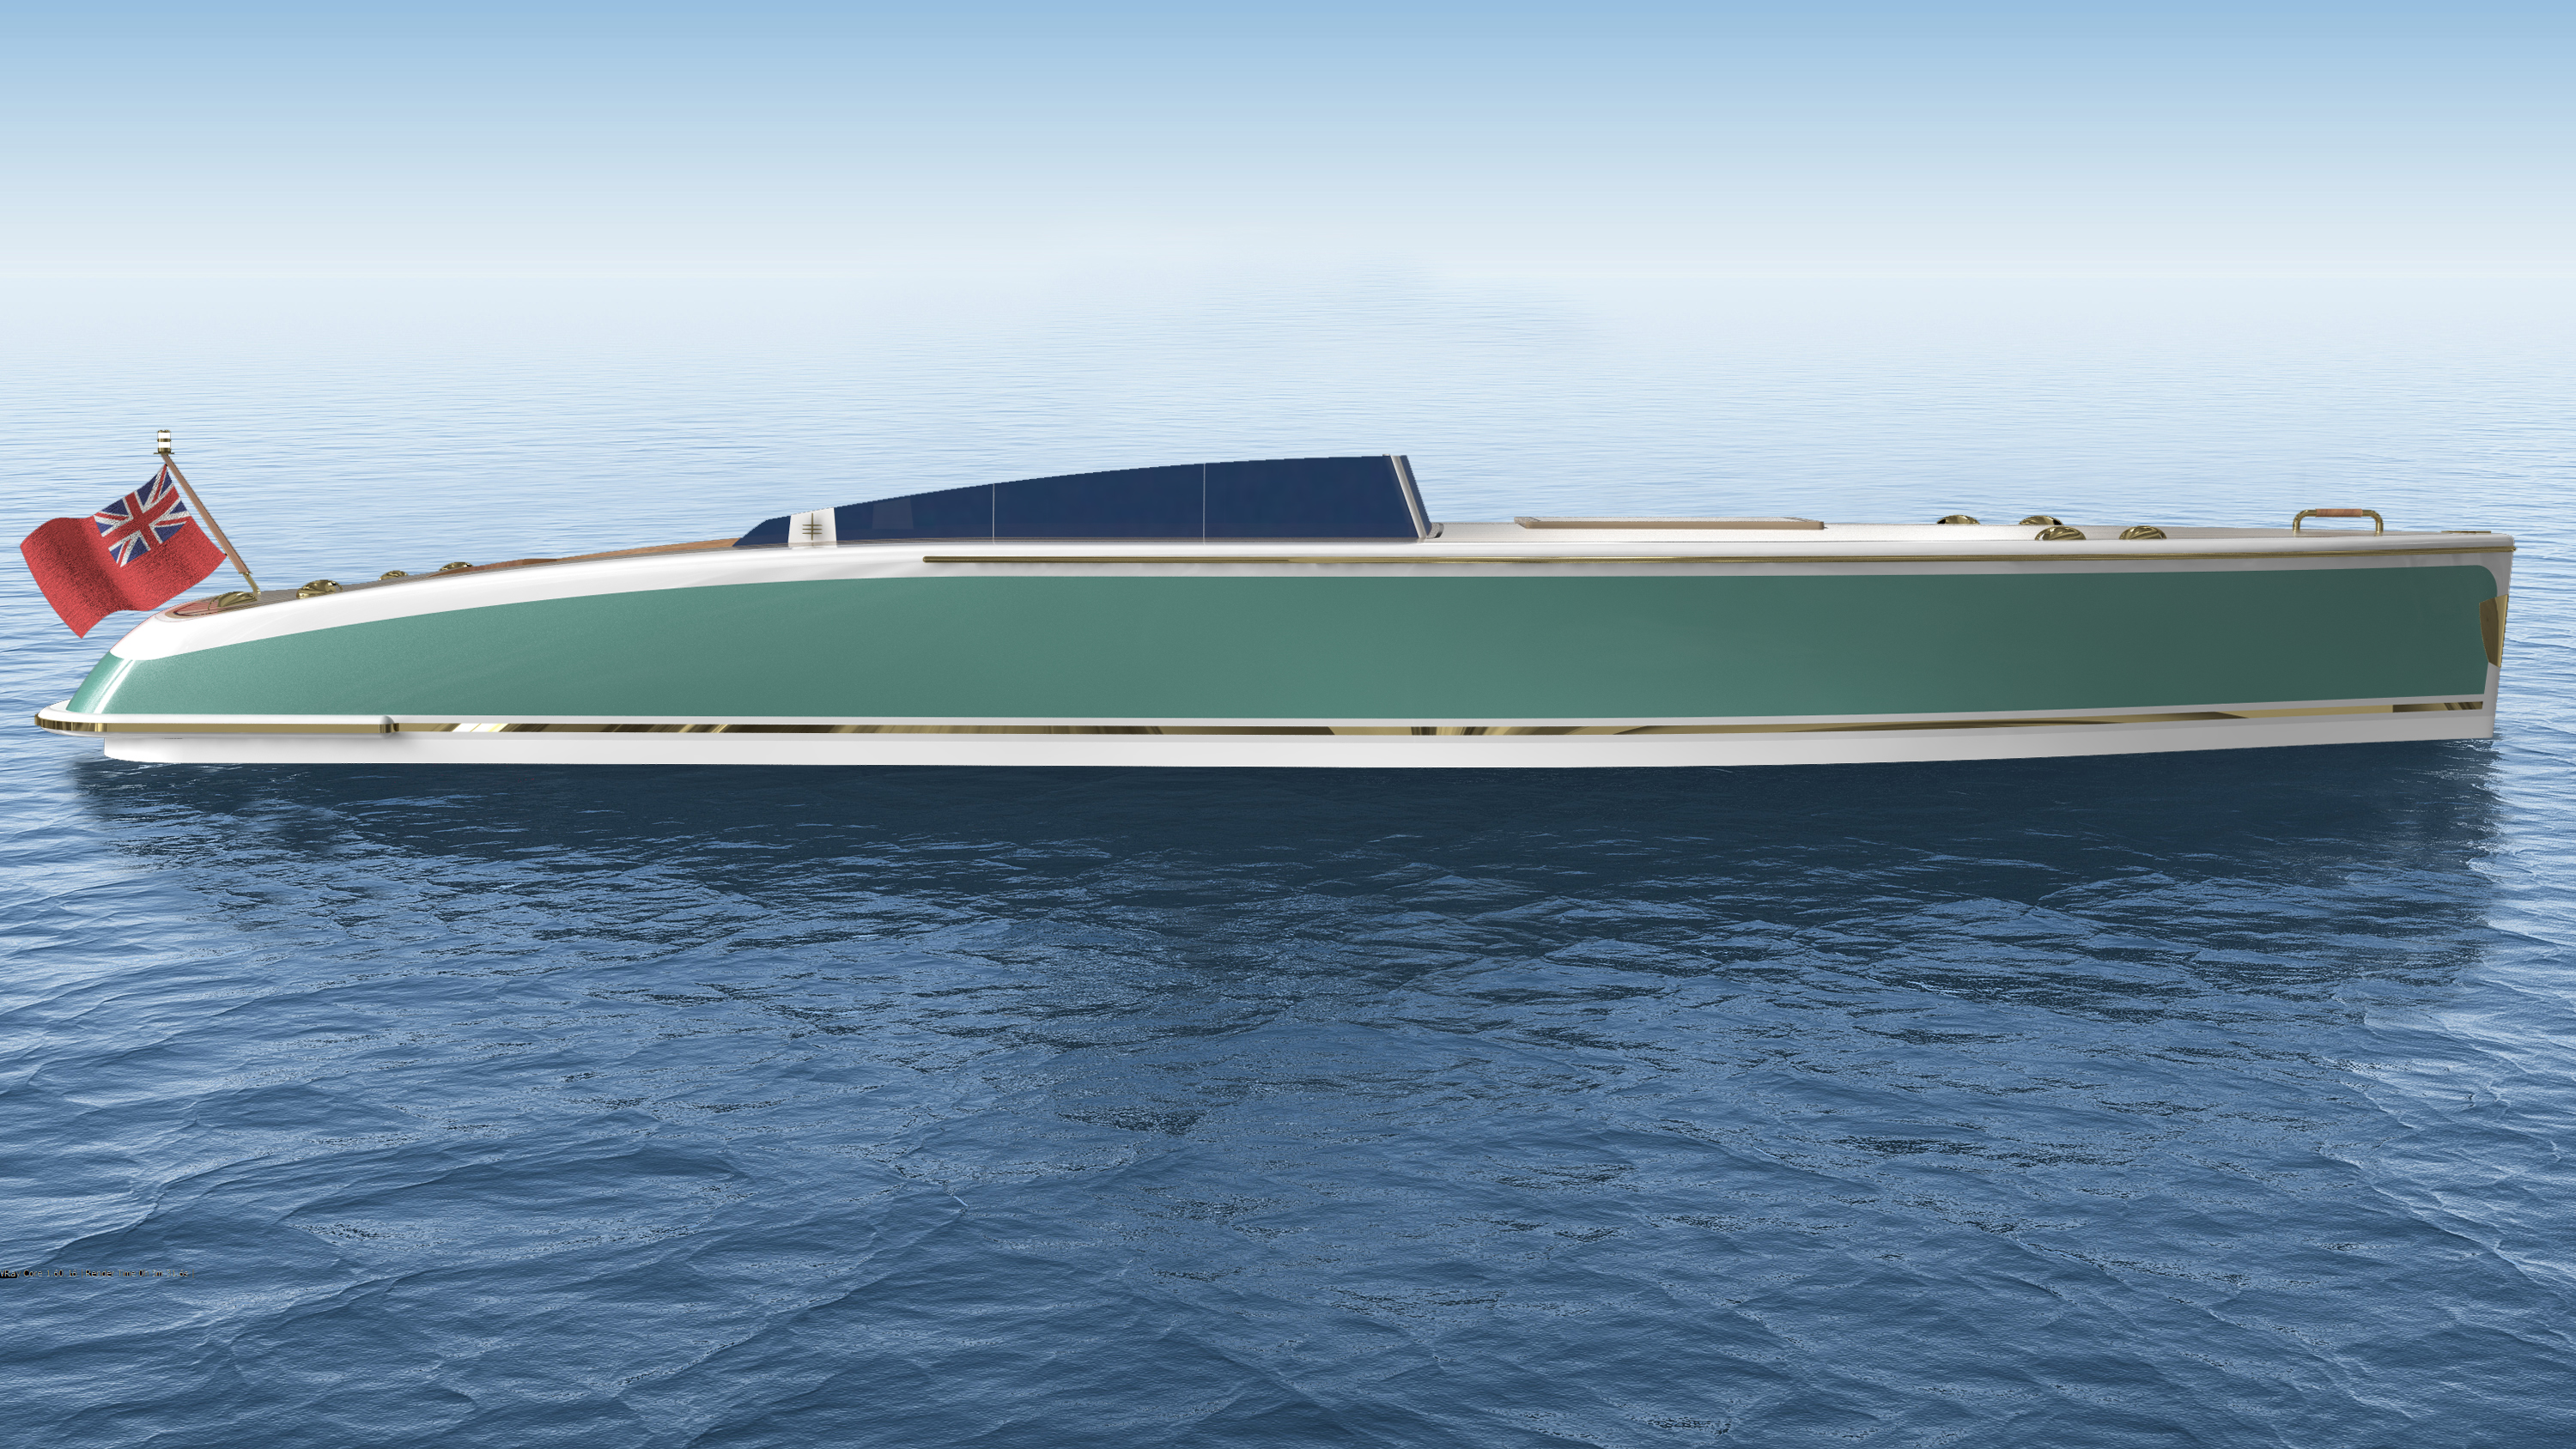 50 Ft_ Yachts http://www.charterworld.com/news/sterling-scott-designed-limo-tender-sports-yacht-tender/50-foot-sports-tender-design-by-sterling-scott